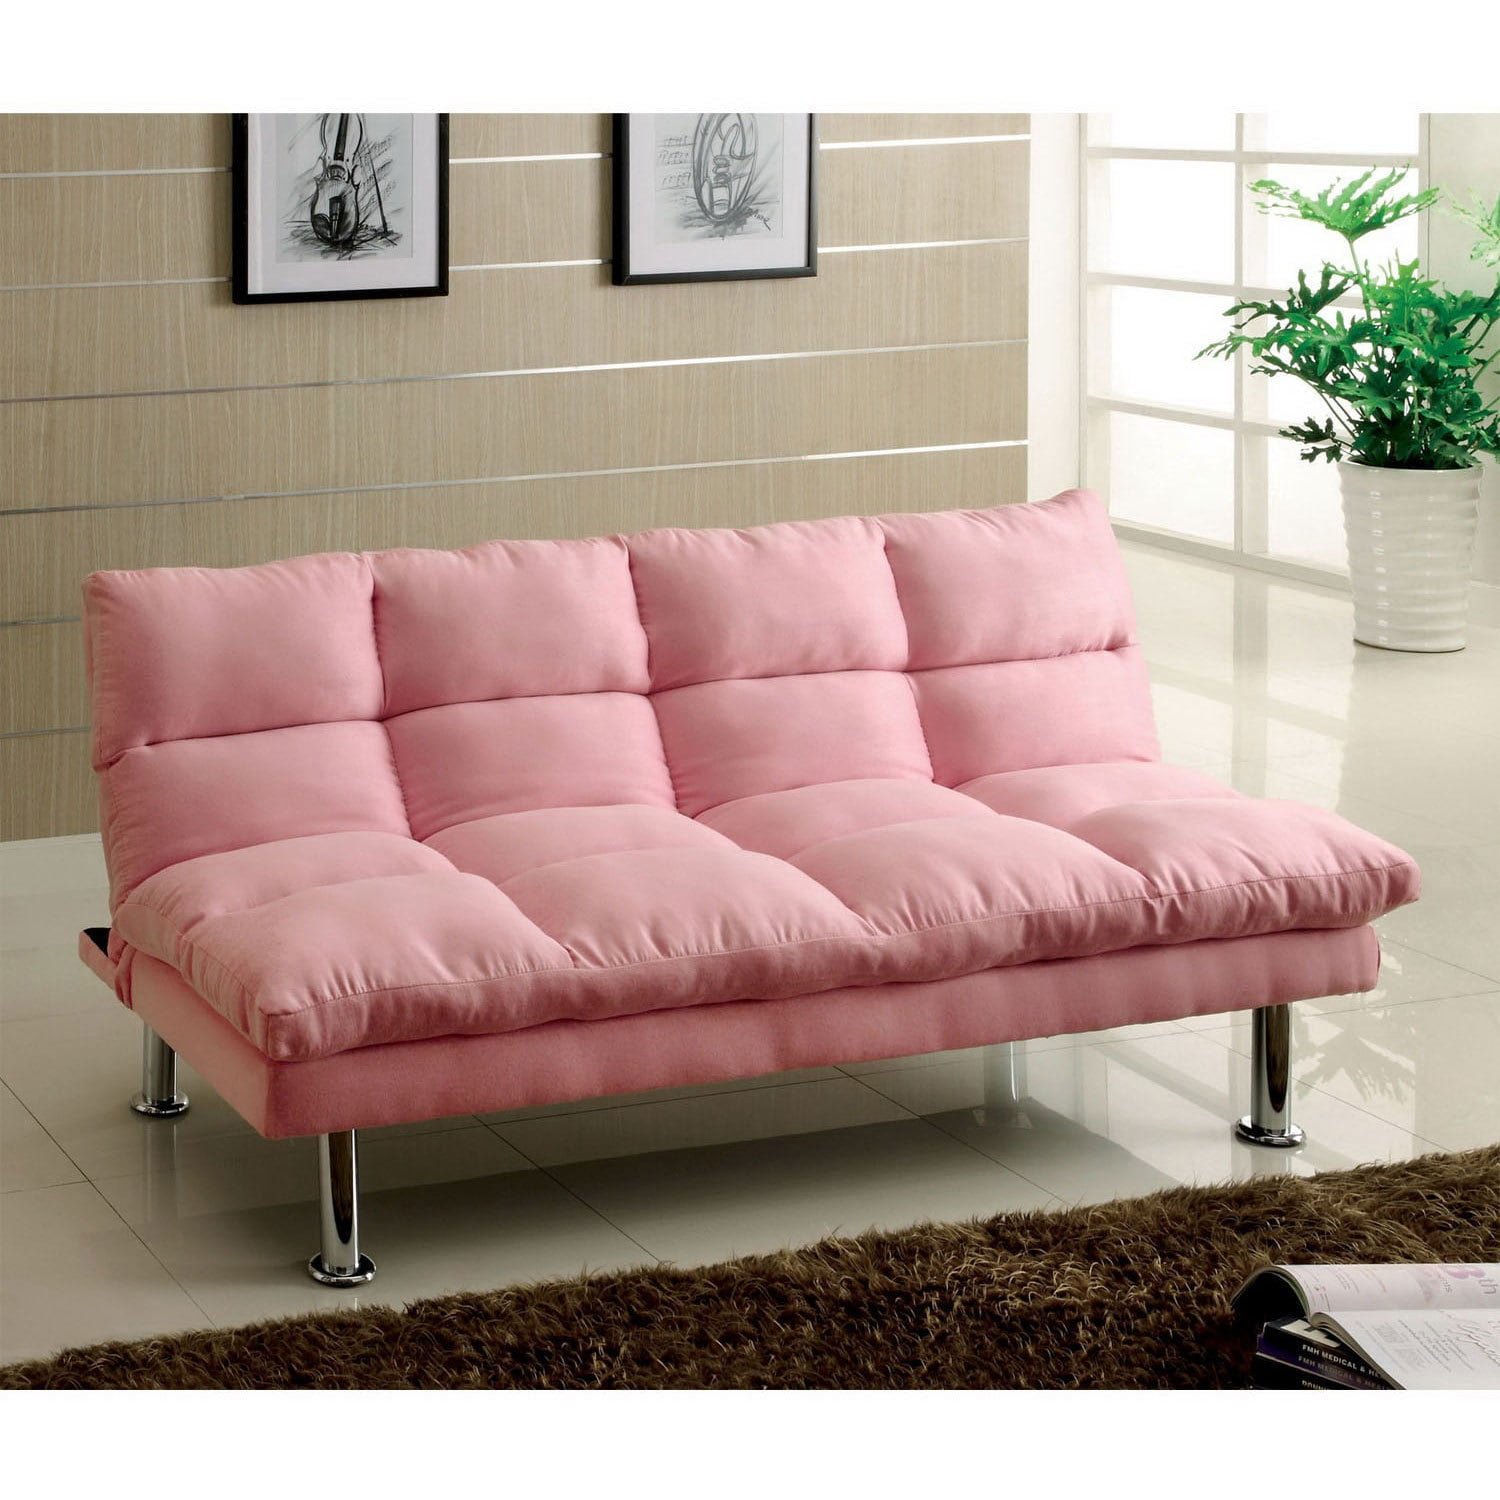 Furniture of America Willow Microfiber Sofa/ Futon (Pink)...